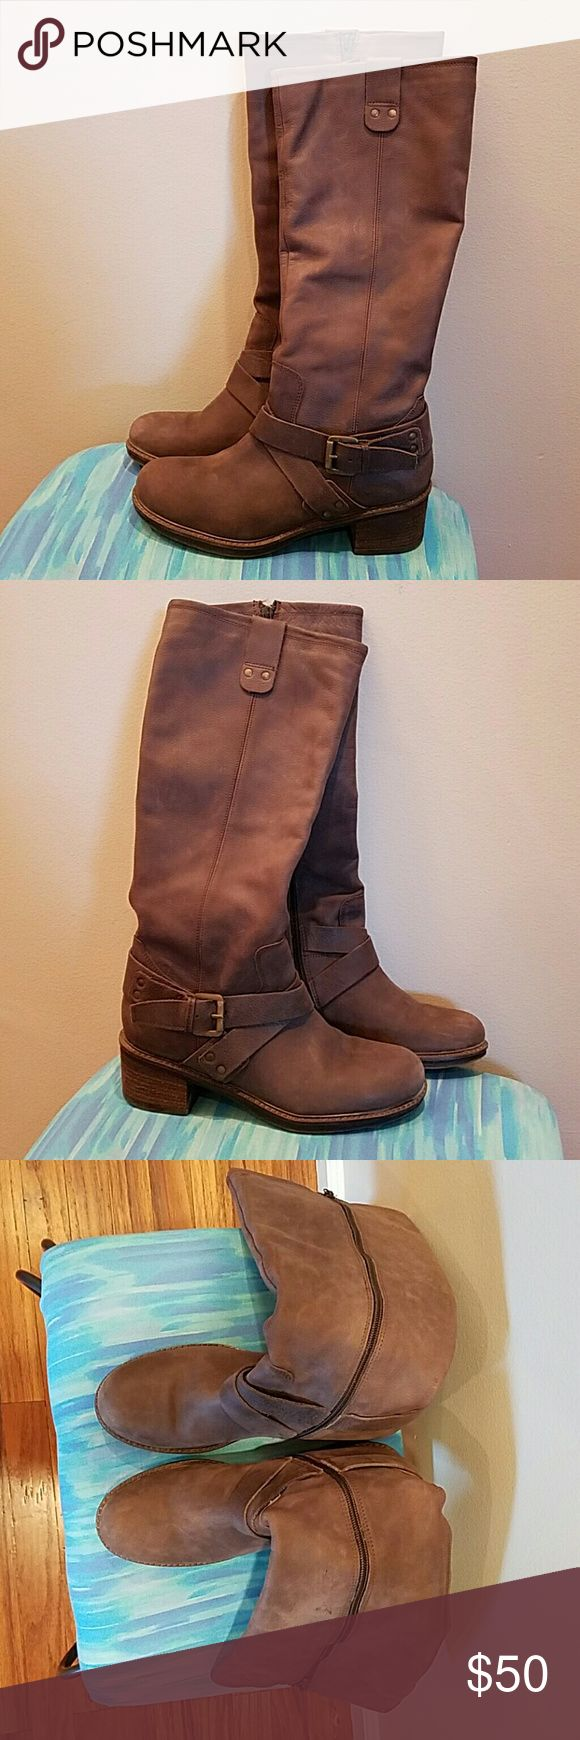 Sommerkind Leather Boots EU 40 US 9-9 1/2 These are gorgeous leather boots in great shape! 17 1/2 inches from top to bottom of the heel and 14 inch diameter at the calf. They are EU 40, I would say U.S 9 to 9 1/2. I wear a 10 and they are a bit tight. Sommerkind Shoes Heeled Boots